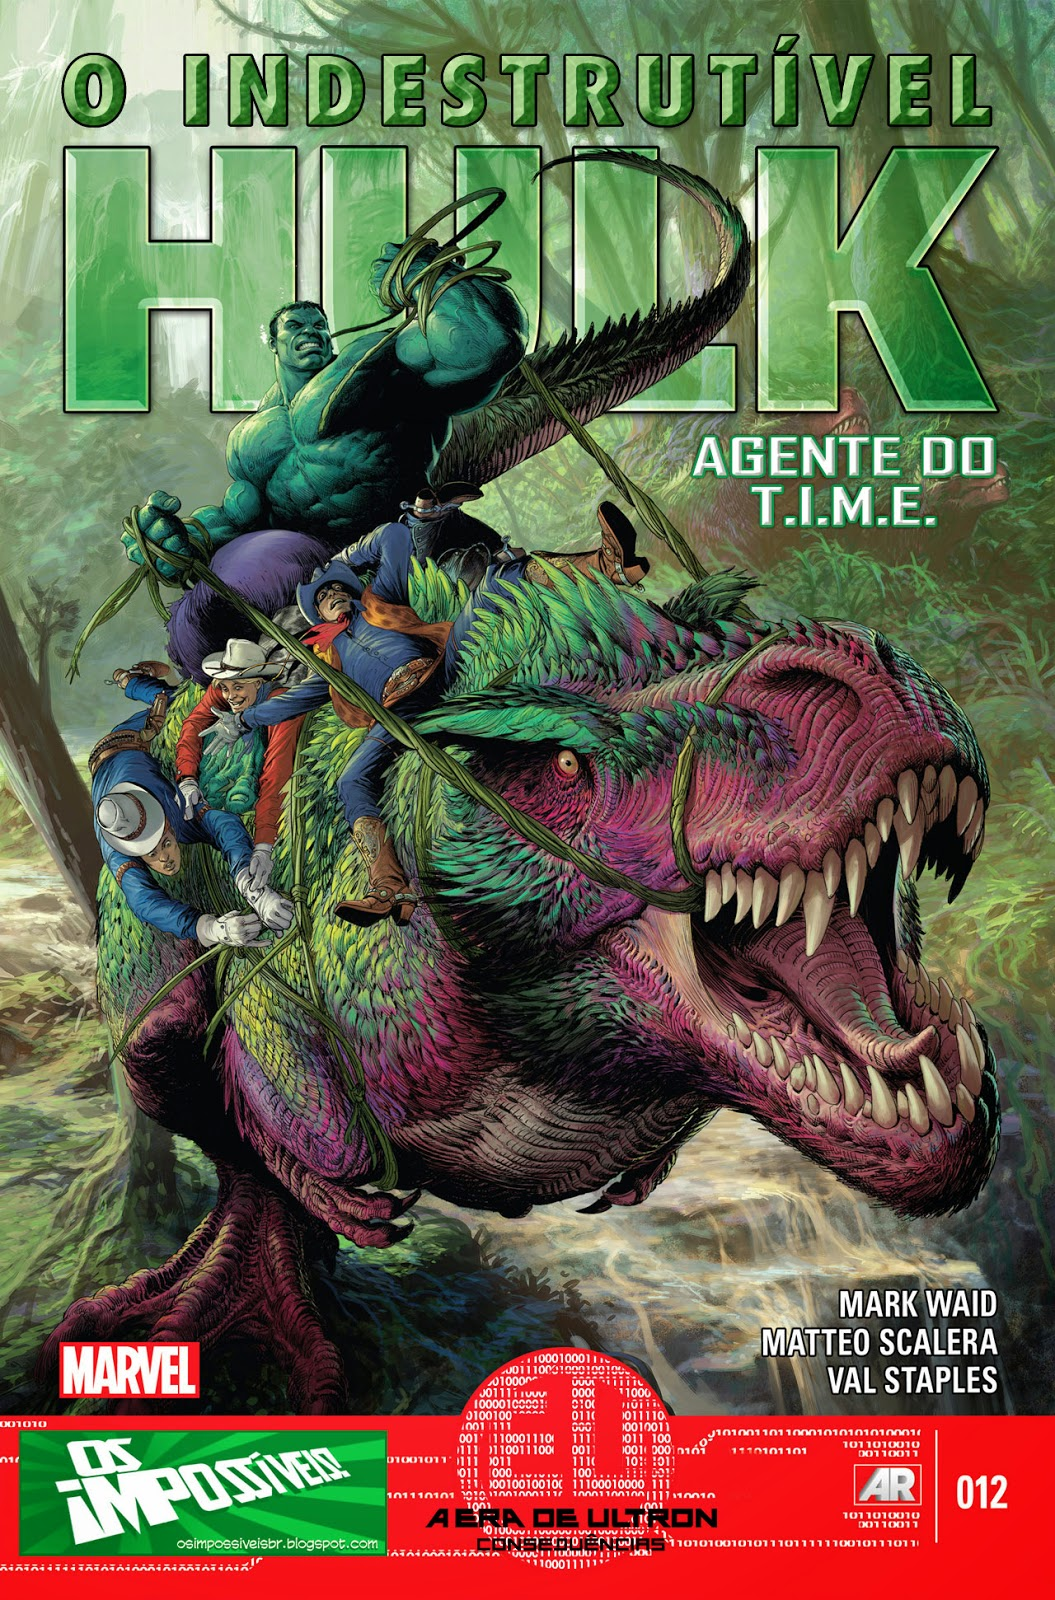 Nova Marvel! O Indestrutível Hulk - Agente do T.I.M.E #12